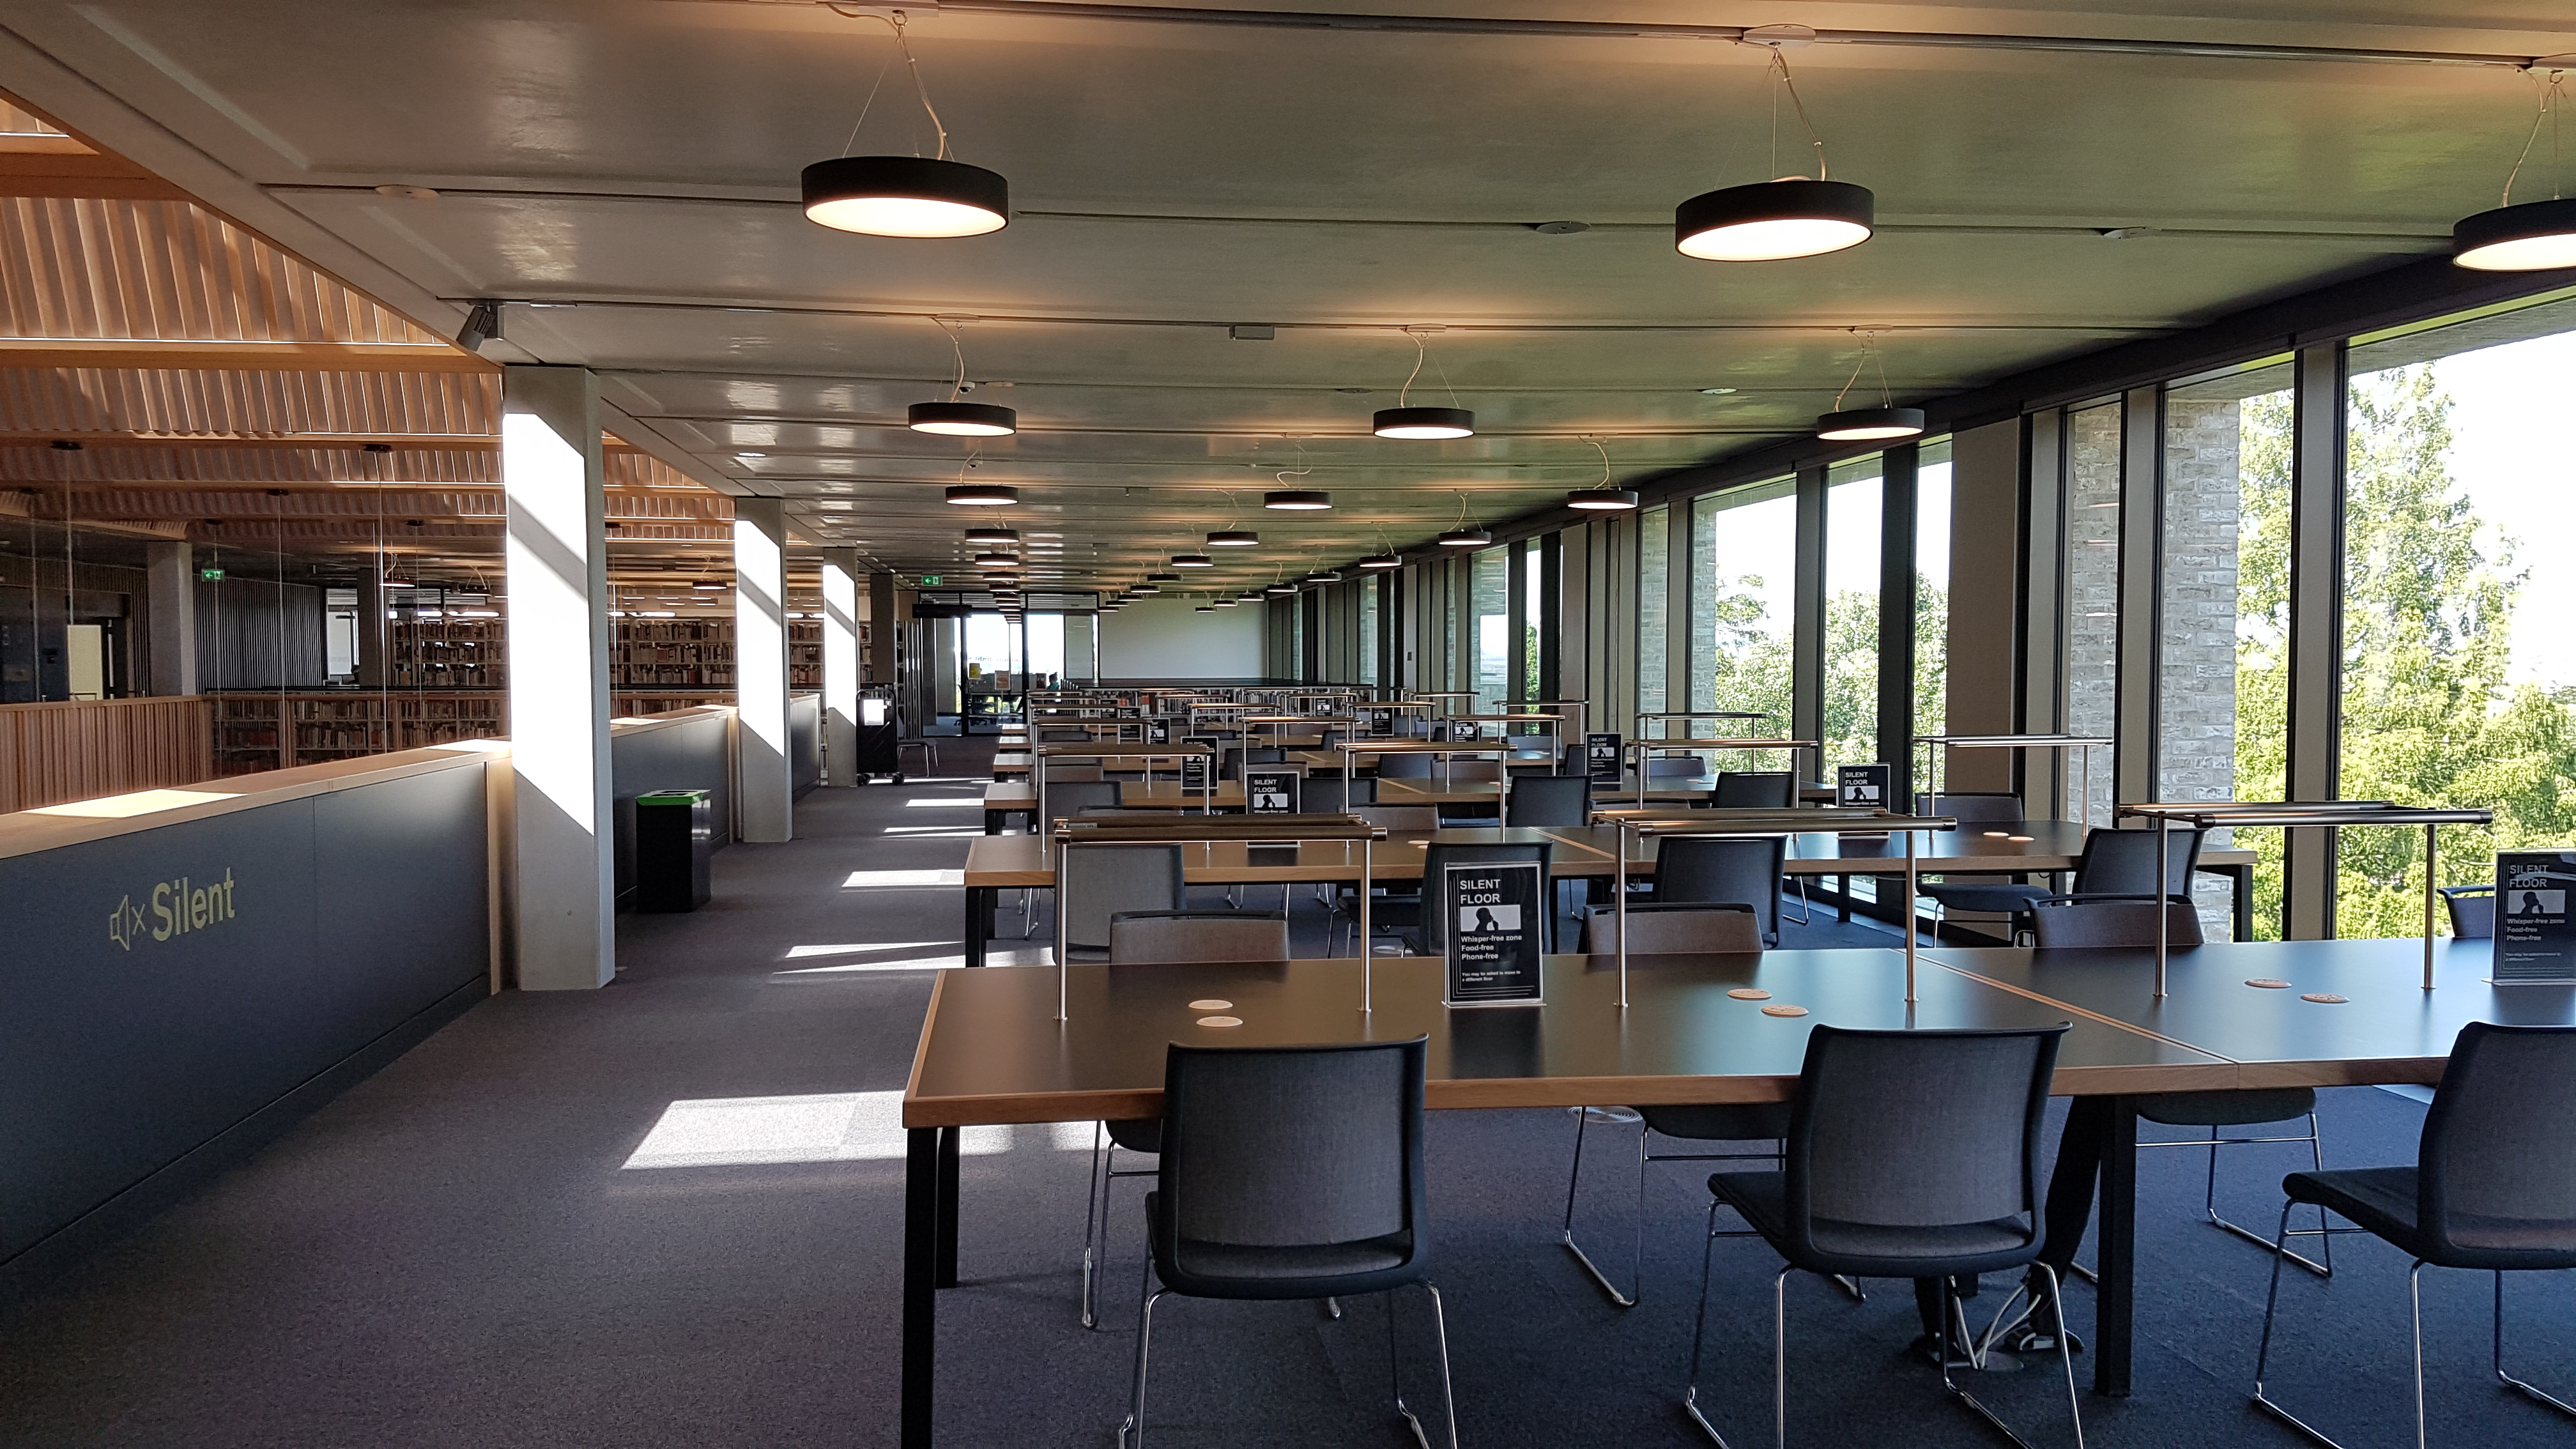 Study desks on the third floor between the atrium and windows. Each desk has 16 individual study spaces.